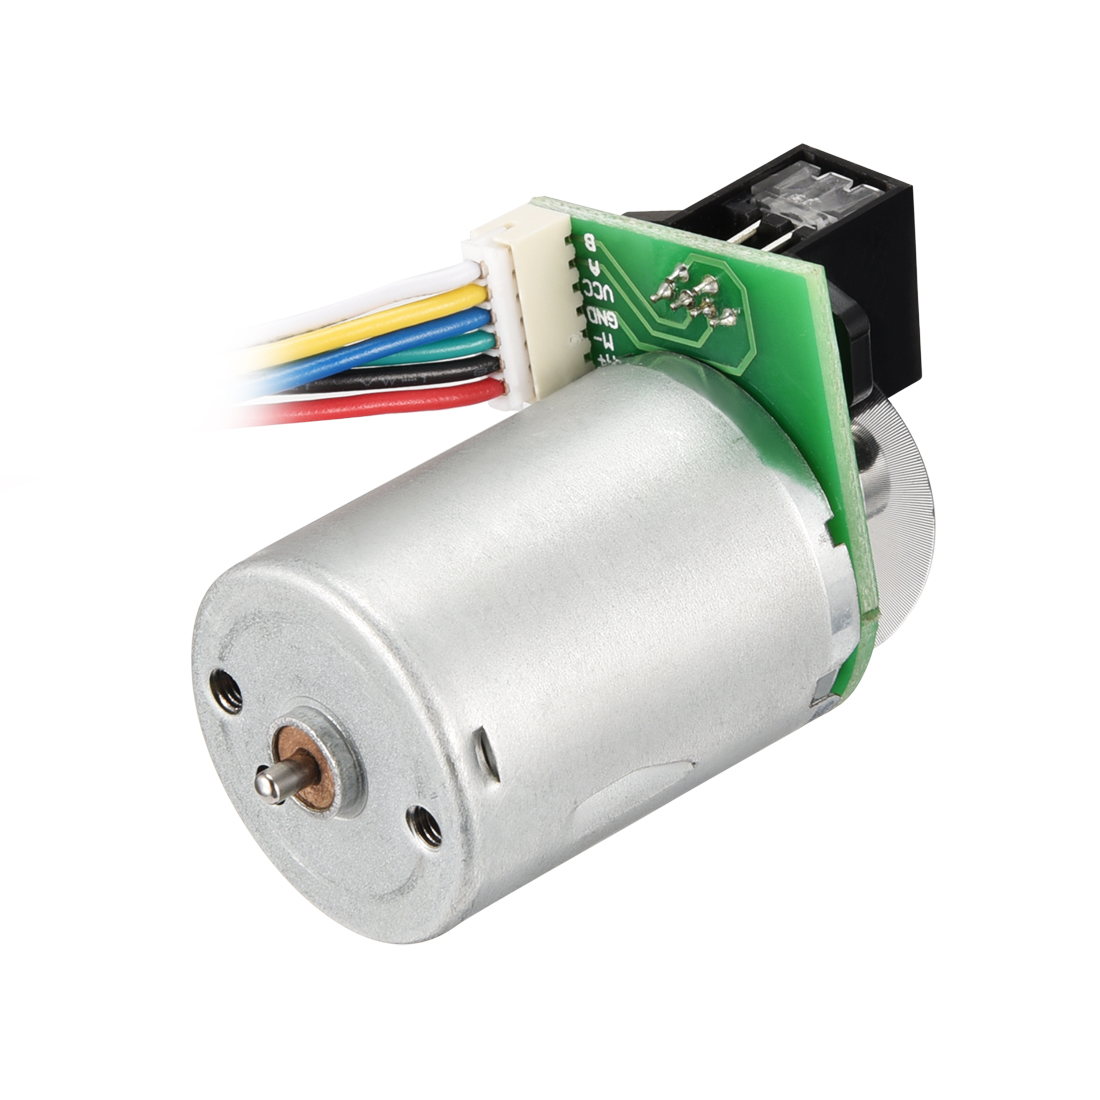 Small Motor DC 12V 4300RPM 6 Wire High Speed Encoder Motor for DIY Toy Cars